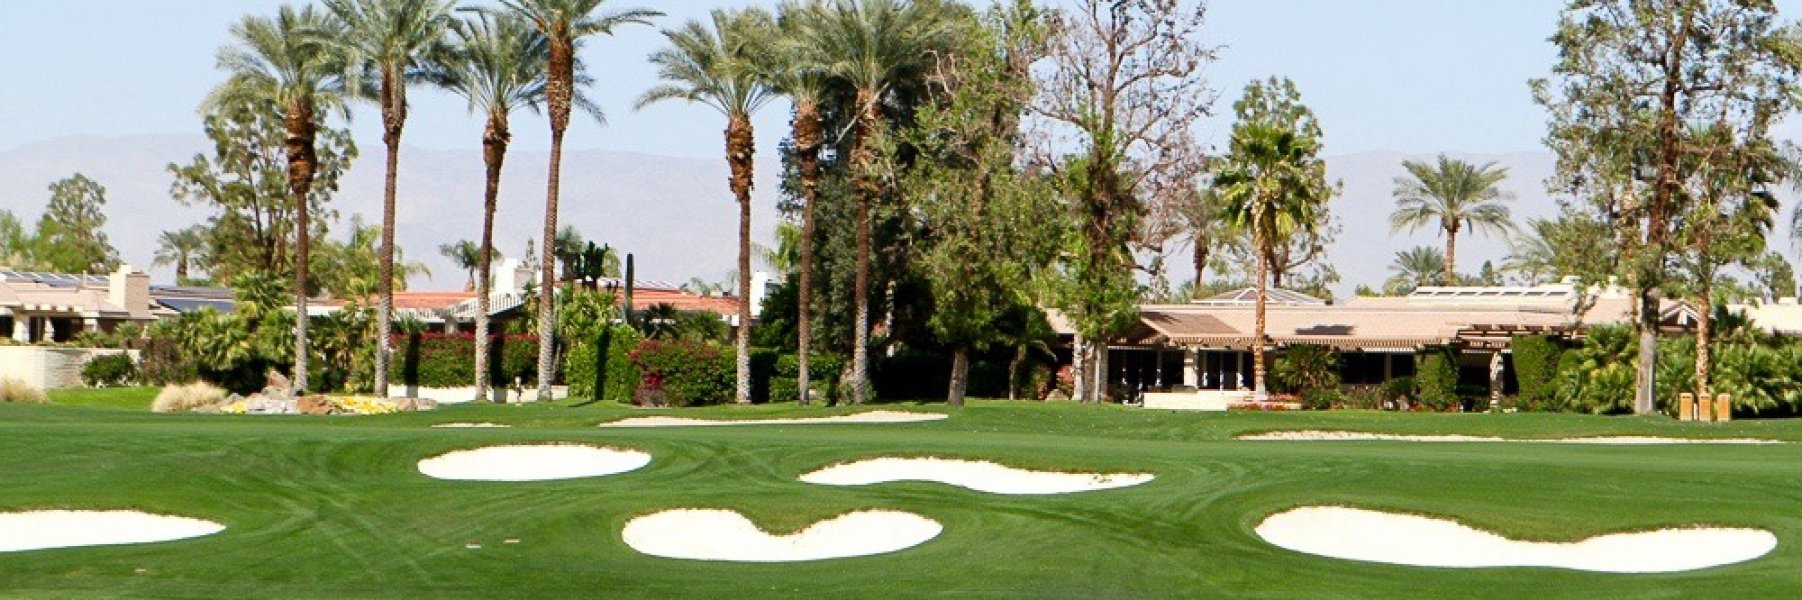 Morningside Country Club is a community of homes in Rancho Mirage California